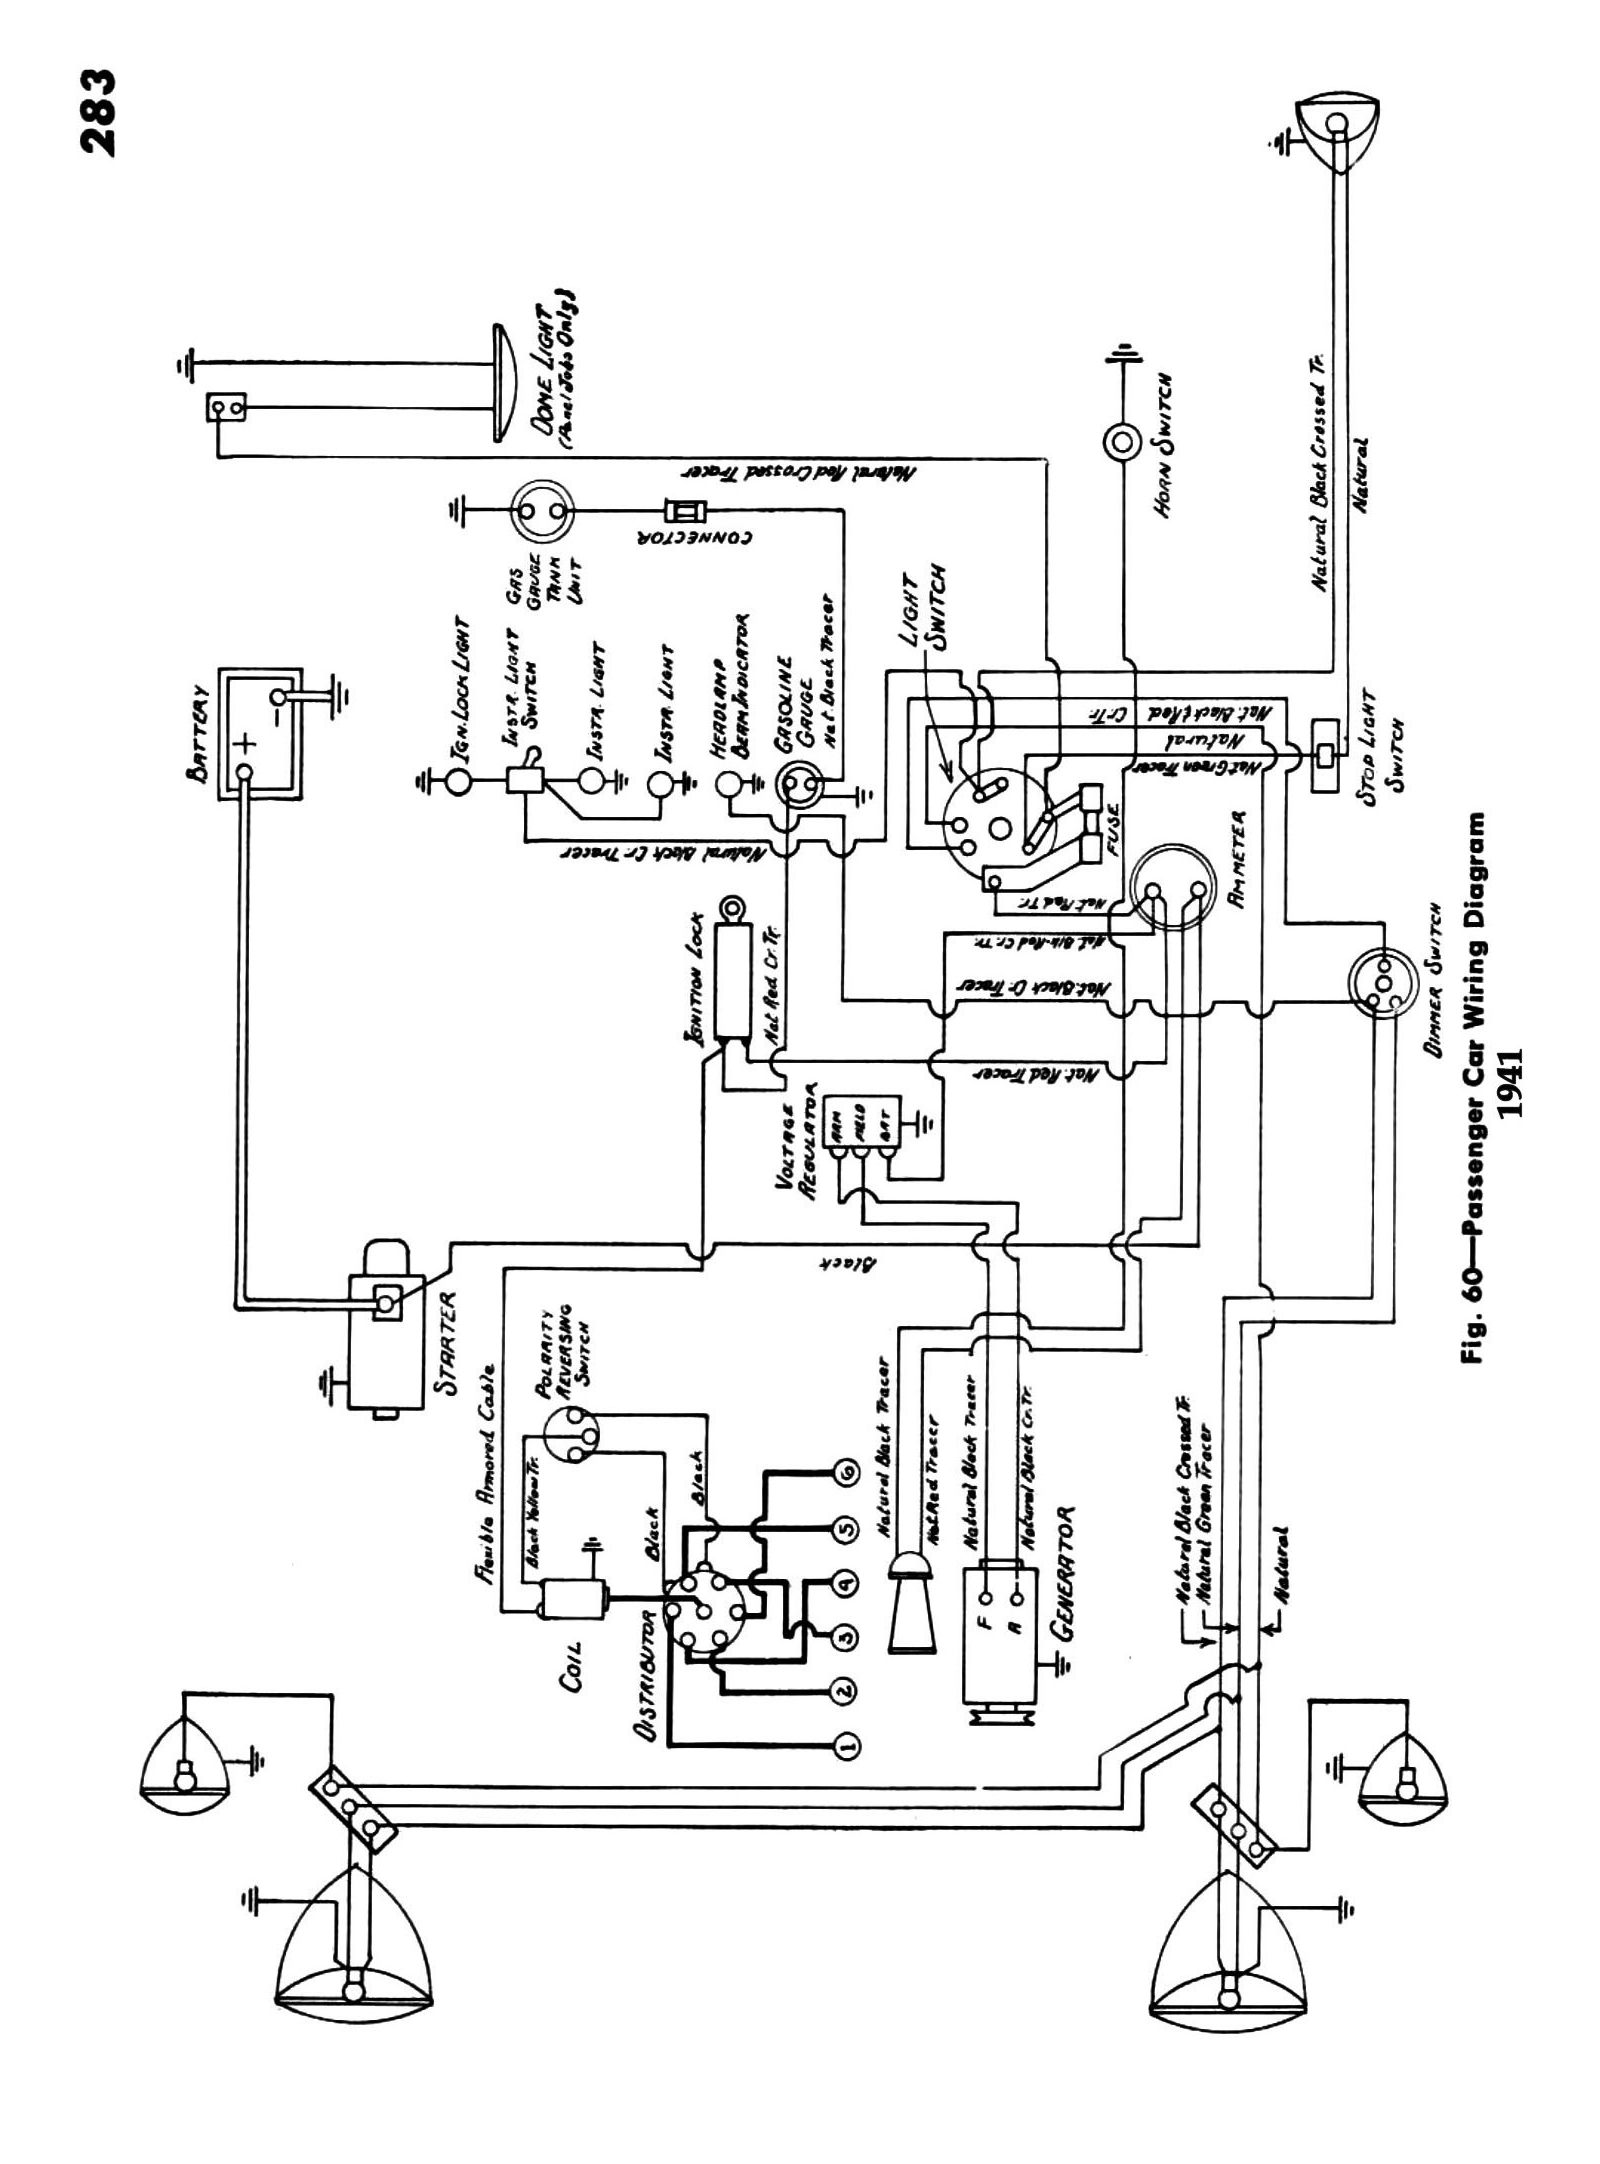 Chevy Wiring diagrams on understanding transformer diagrams, understanding engineering drawings, understanding foundation diagrams, understanding circuits diagrams, pinout diagrams, understanding electrical diagrams, electronic circuit diagrams, understanding ladder diagrams, understanding schematic diagrams,